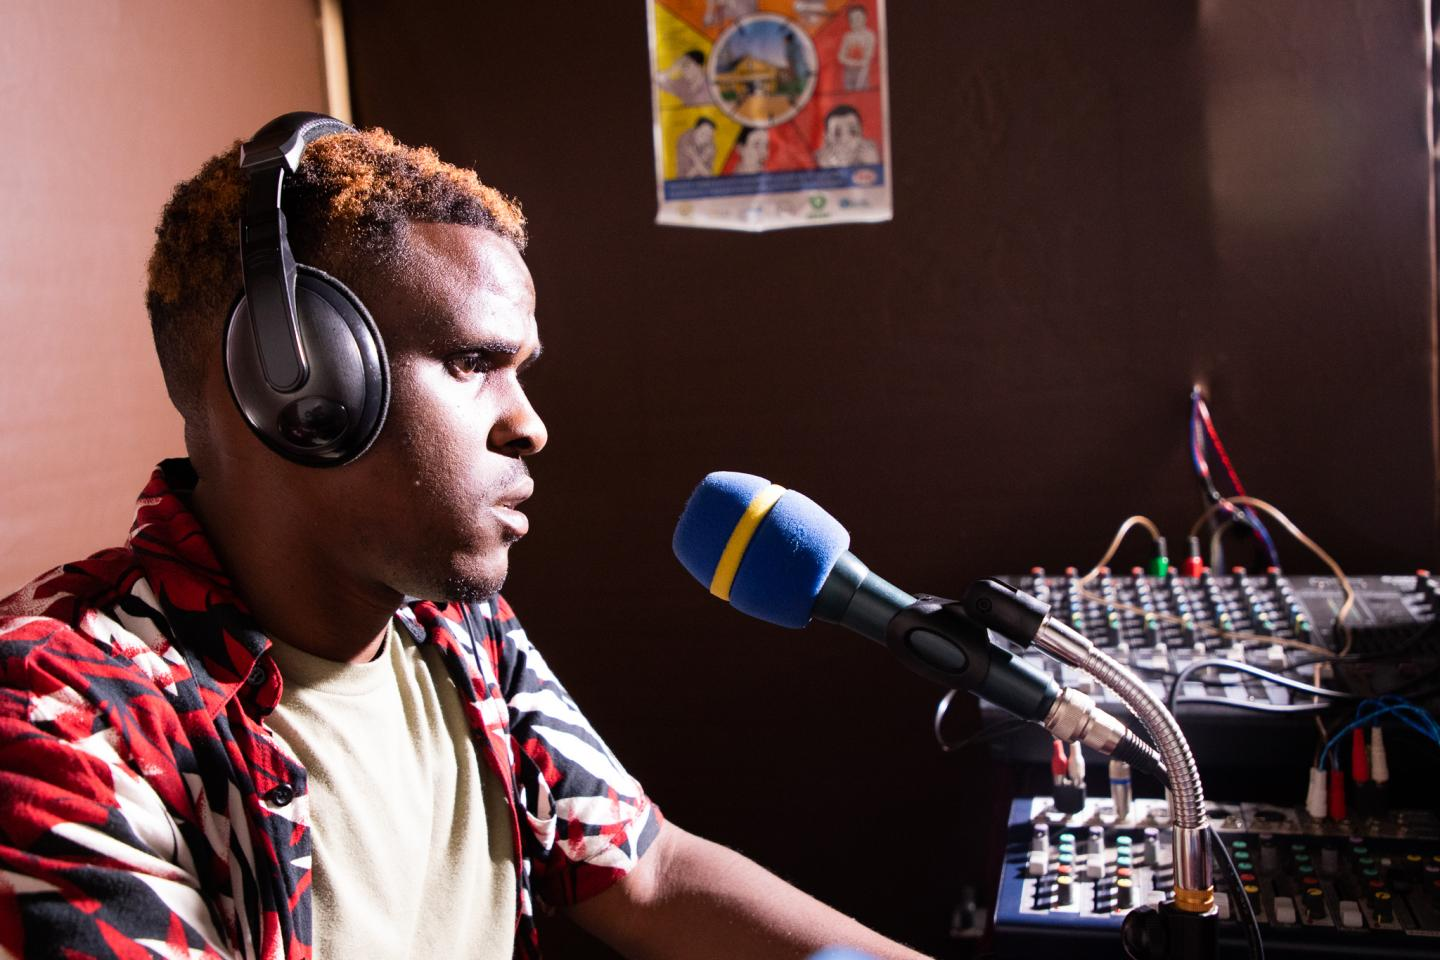 Advice on the Airwaves | UNICEF Rwanda